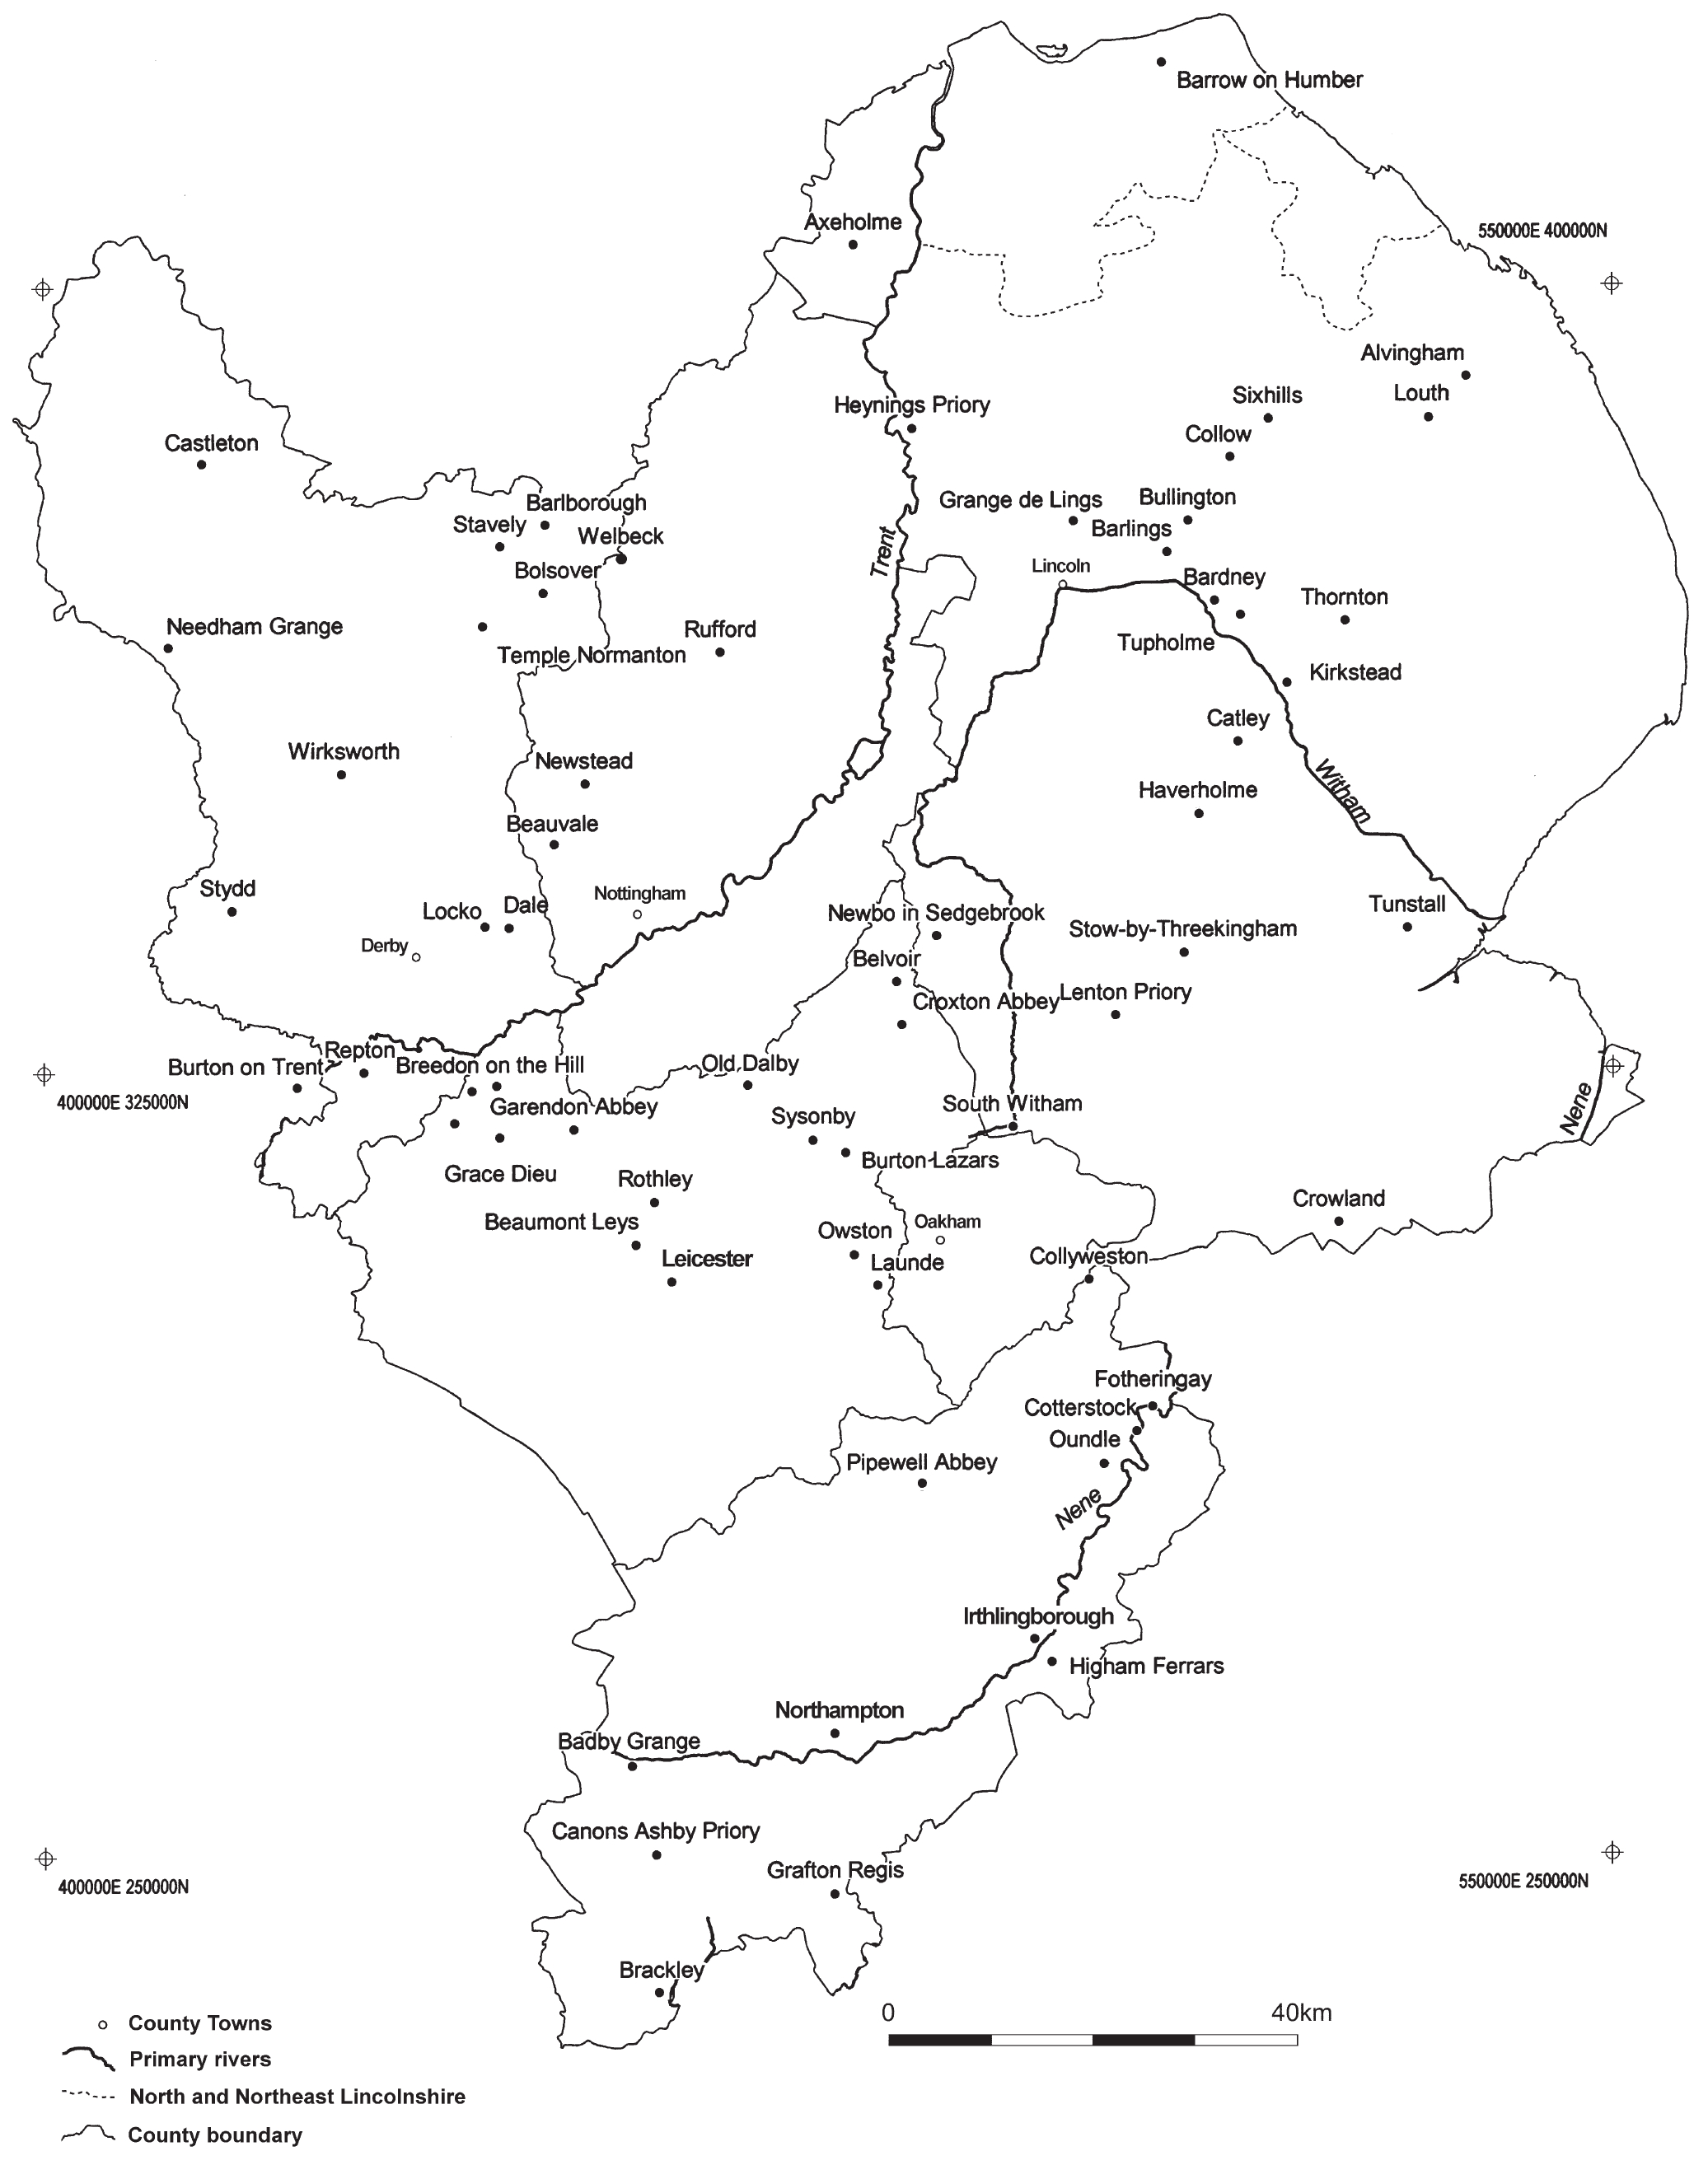 A map of the midlands showing the distribution of sites. Sites are concentrated in the center and north of the region, with fewer in the south.